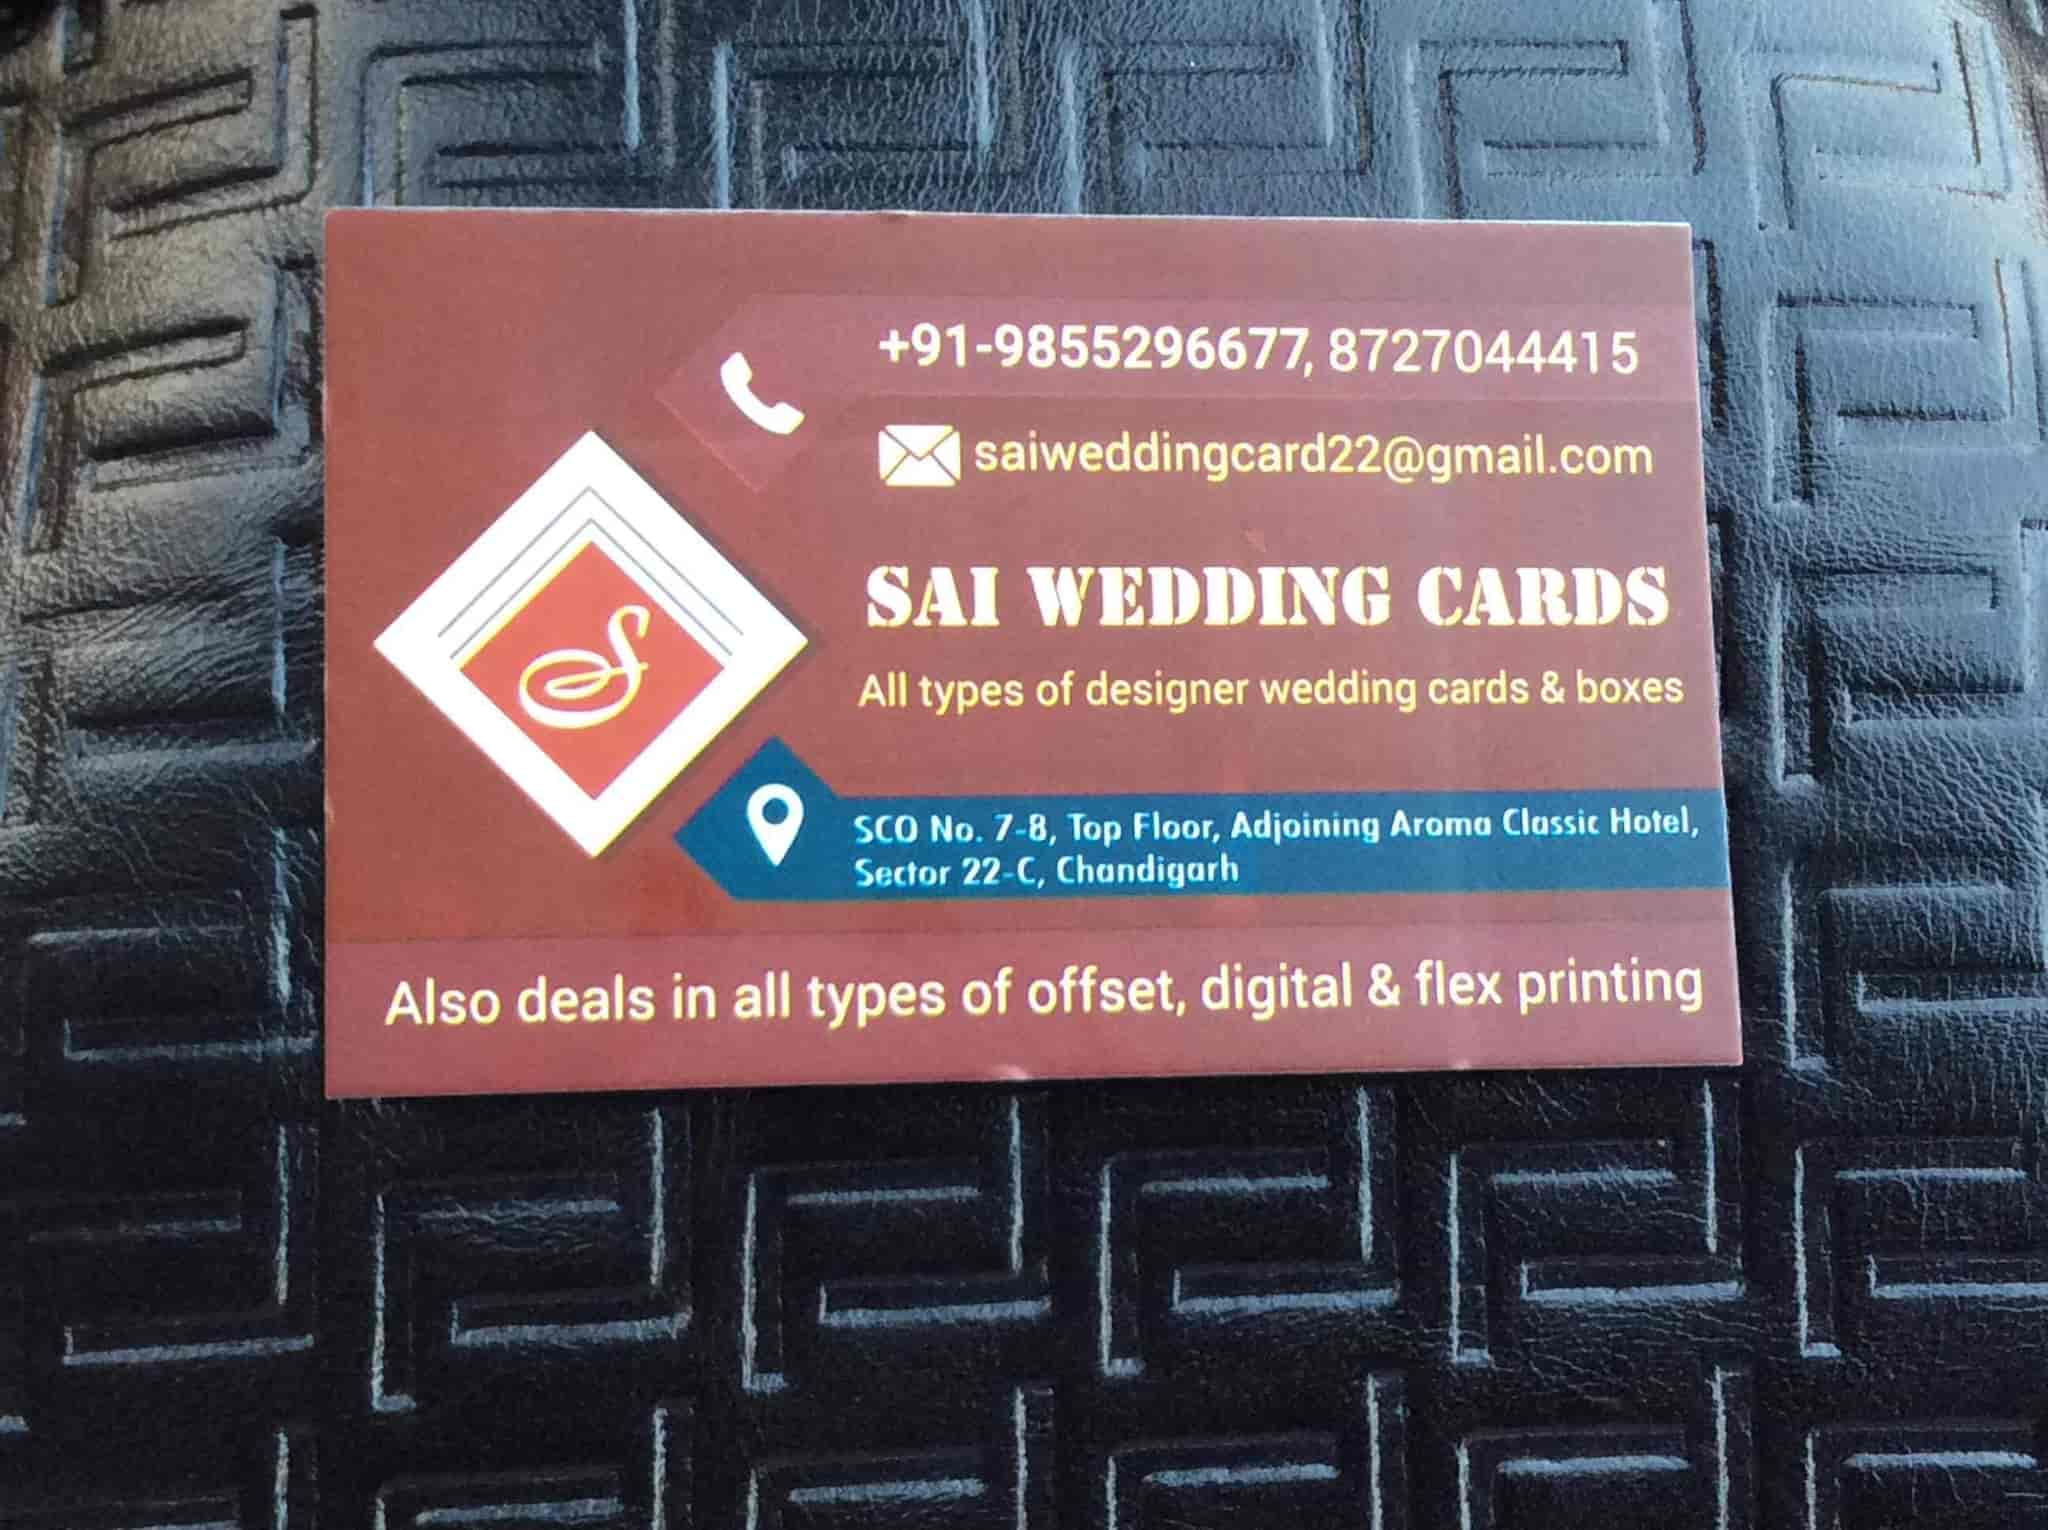 Sai Wedding Cards Photos Sector 22 Chandigarh Pictures Images